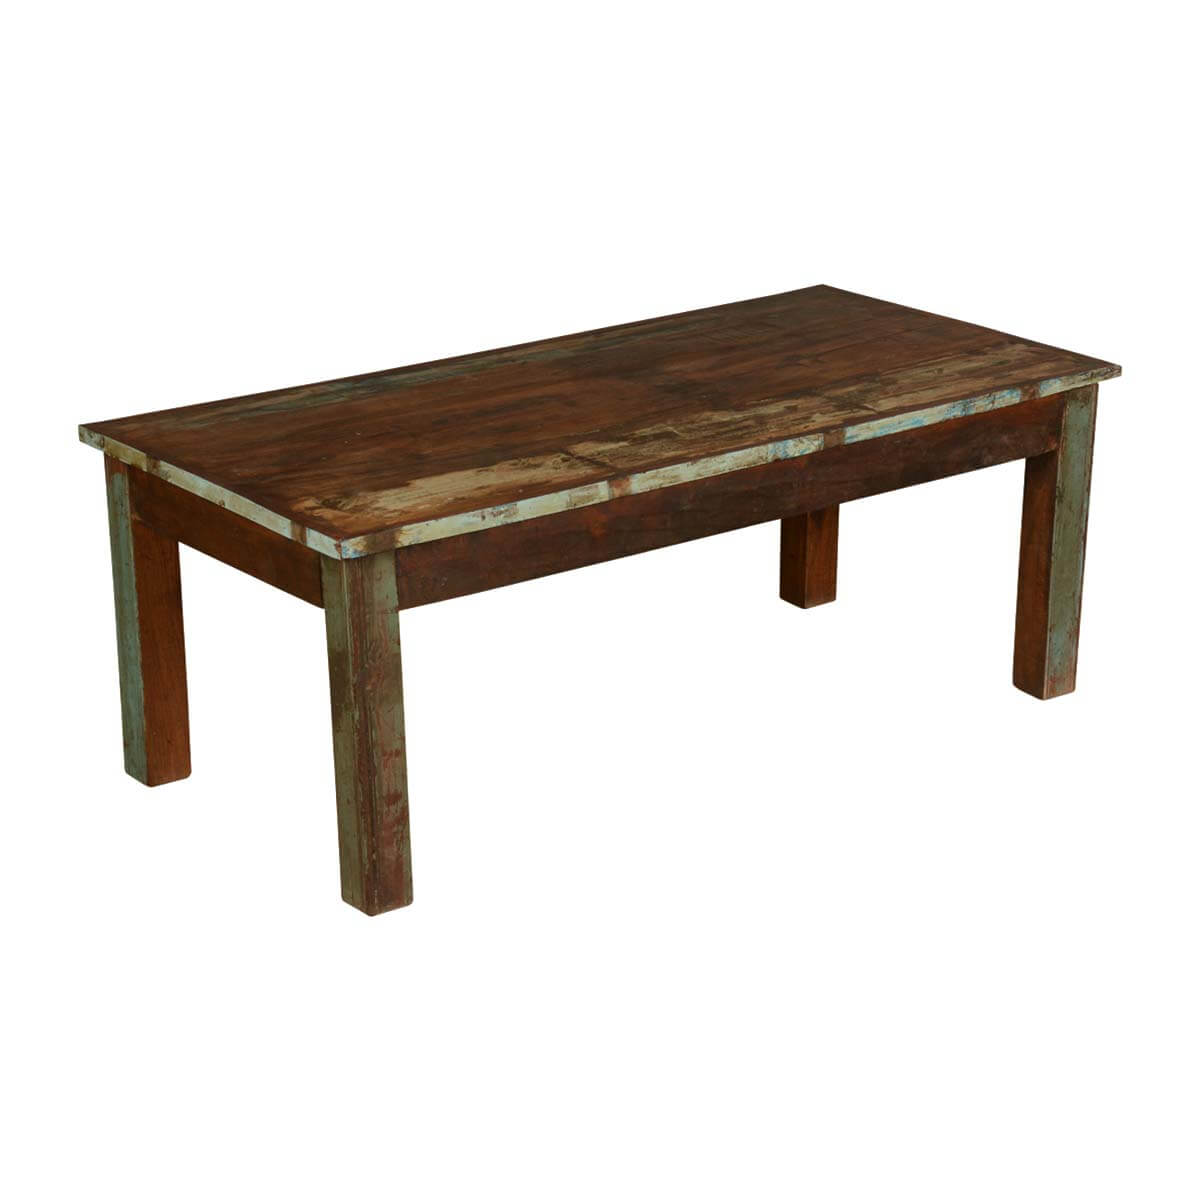 Farmhouse distressed reclaimed wood rustic coffee table for Coffee table